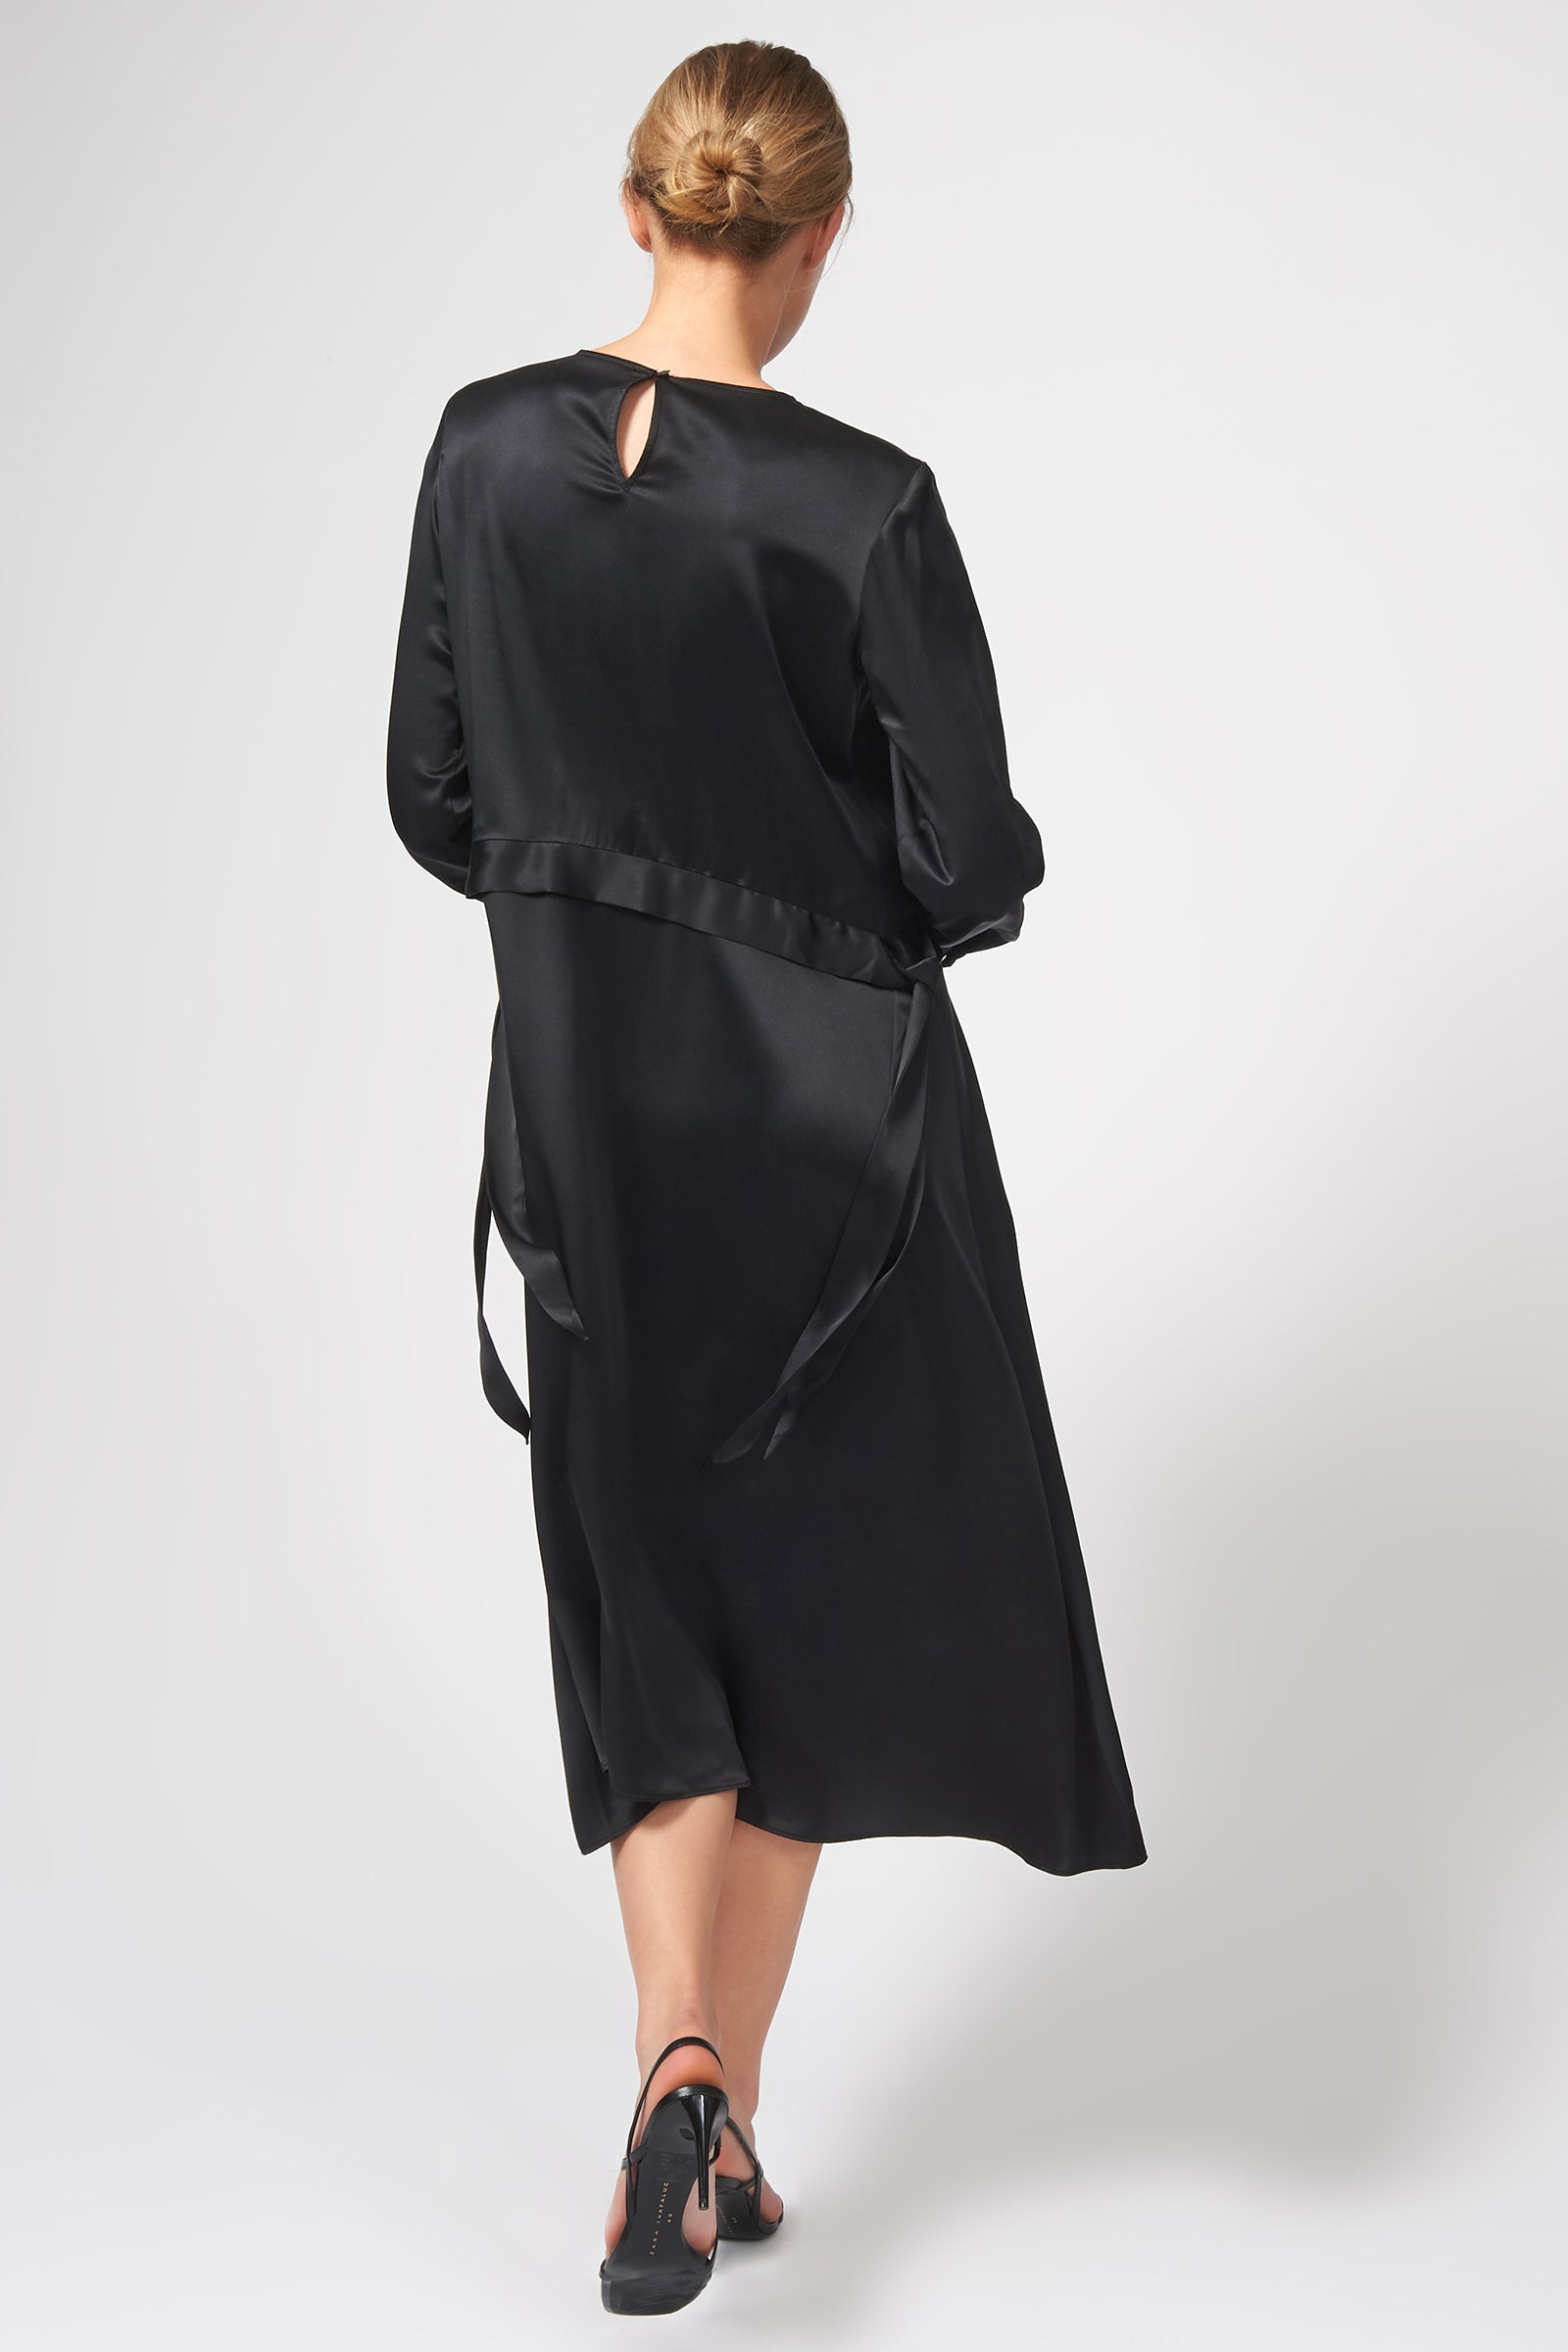 Kal Rieman Side Tie Midi Dress in Black on Model Back View